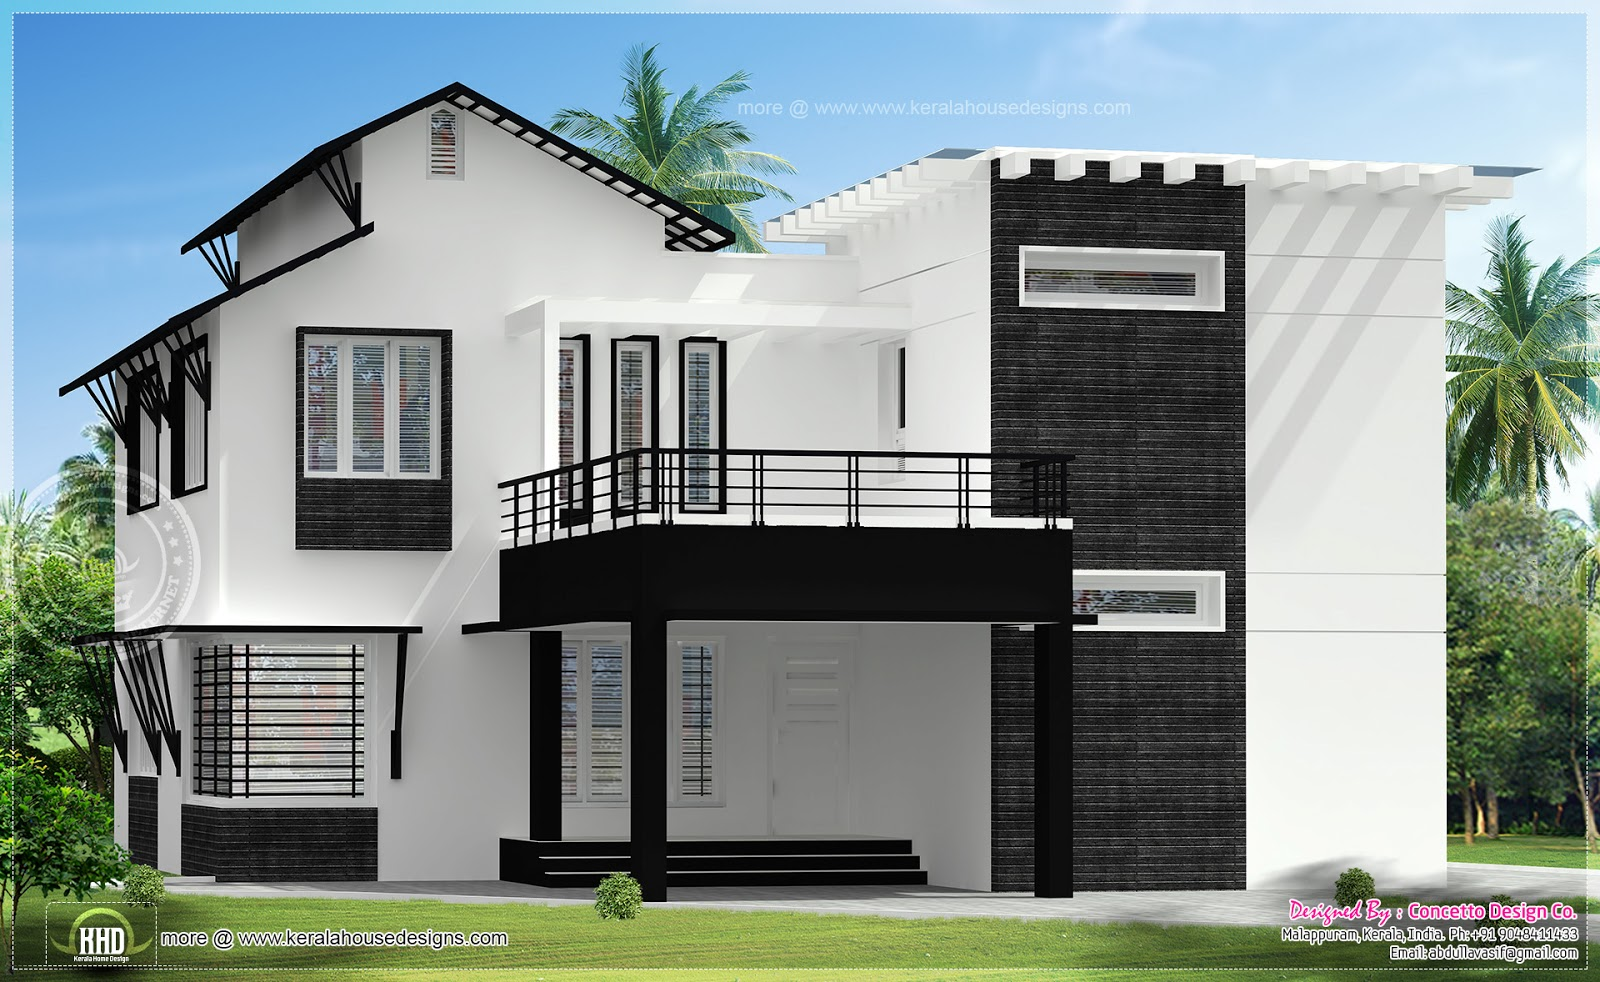 5 different house exteriors by concetto design kerala for Home floor designs image